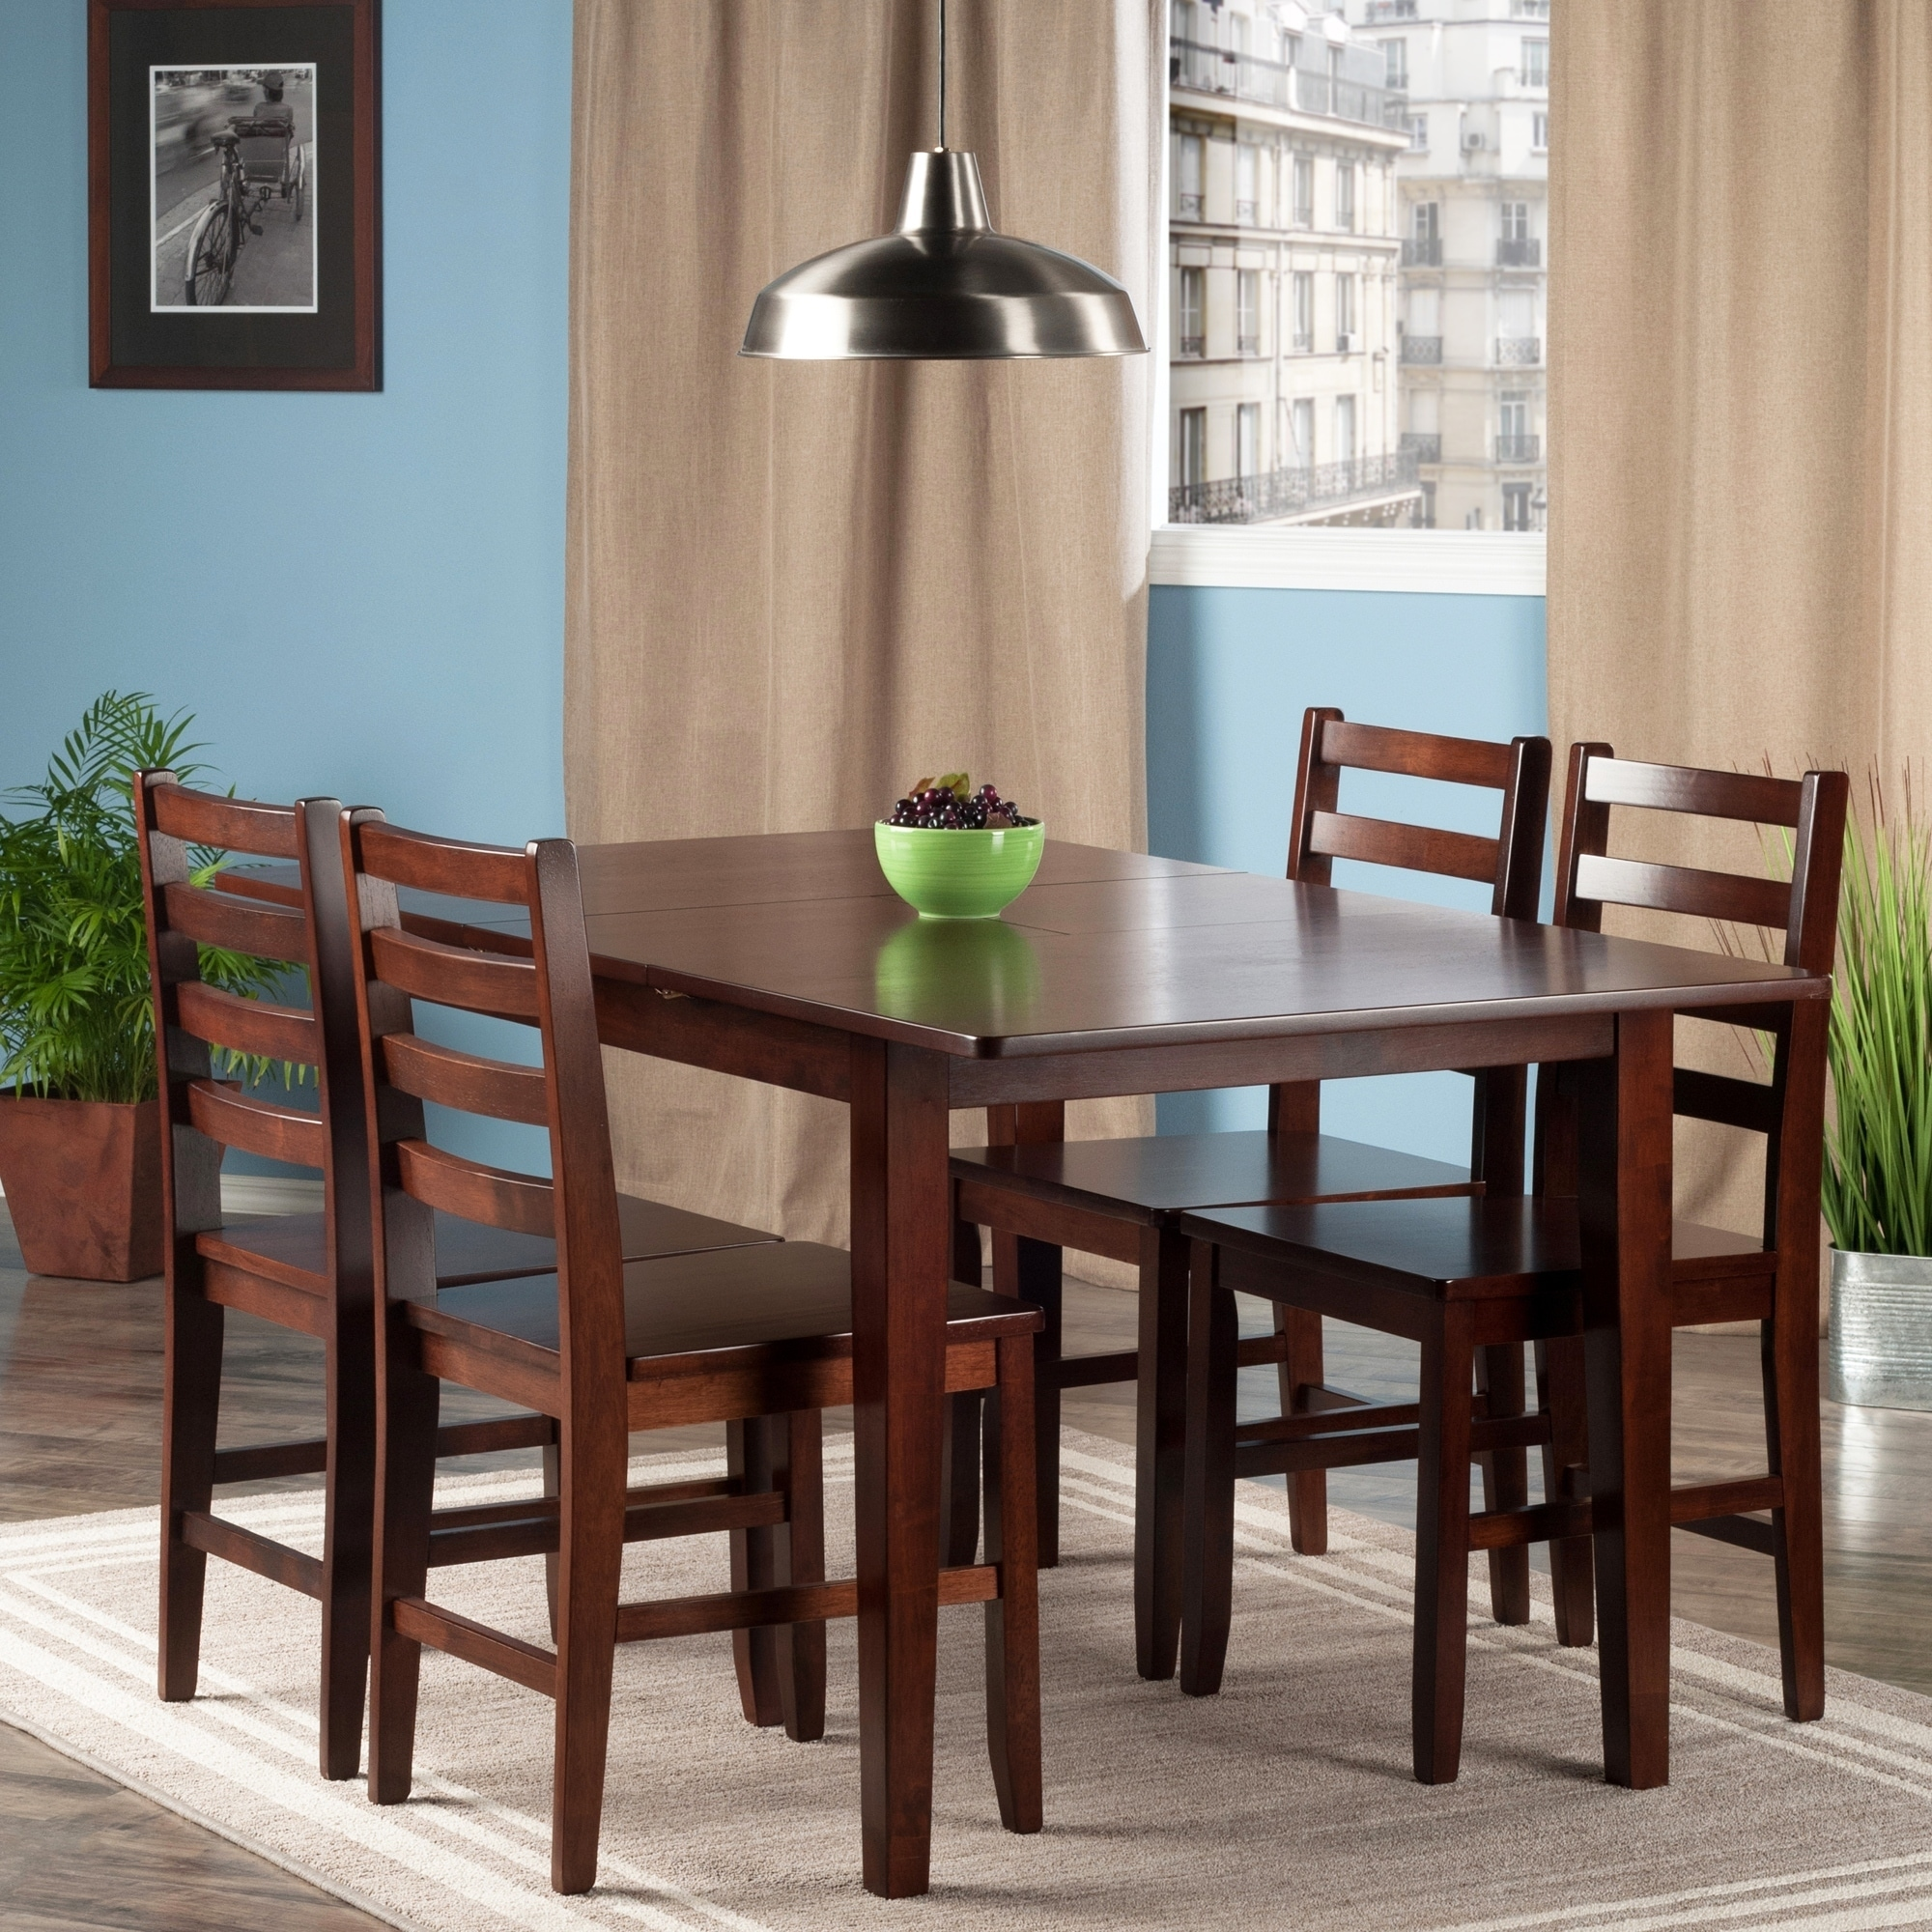 Shop Anna 5 PC Dining Table Set W/ Ladder Back Chairs   Free Shipping Today    Overstock.com   20742219